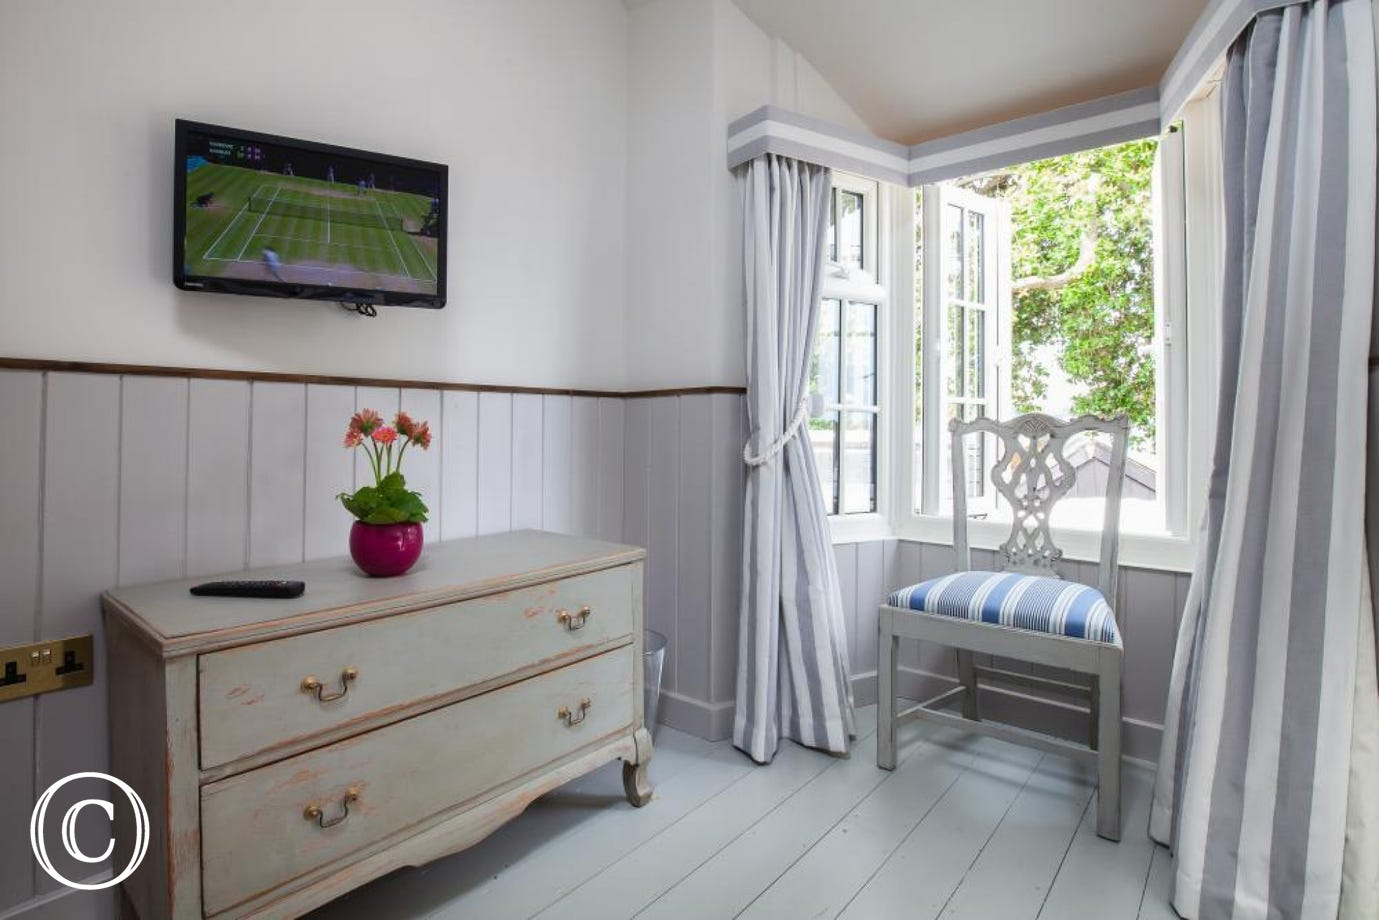 3rd bedroom TV, drawers and bay window with views to the estuary.